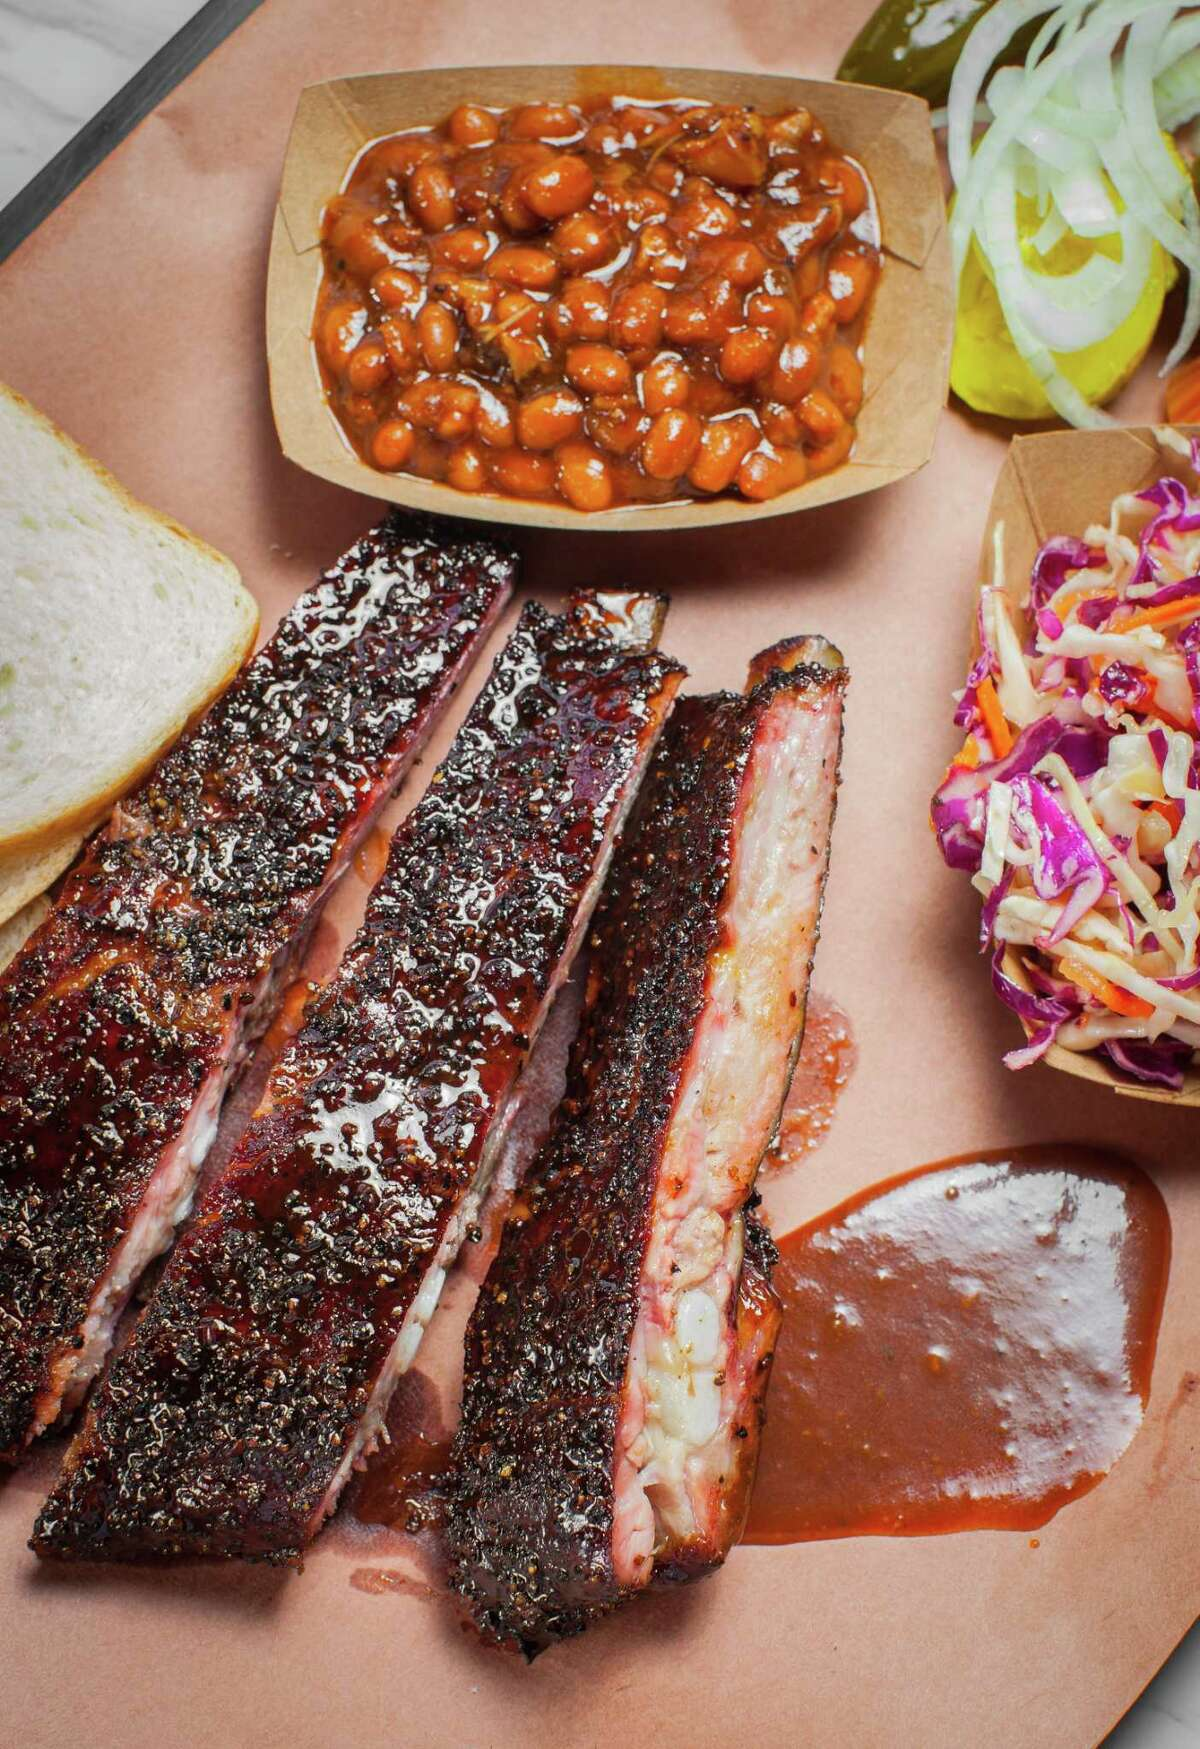 A display of barbecue and sides at Killen's Barbecue